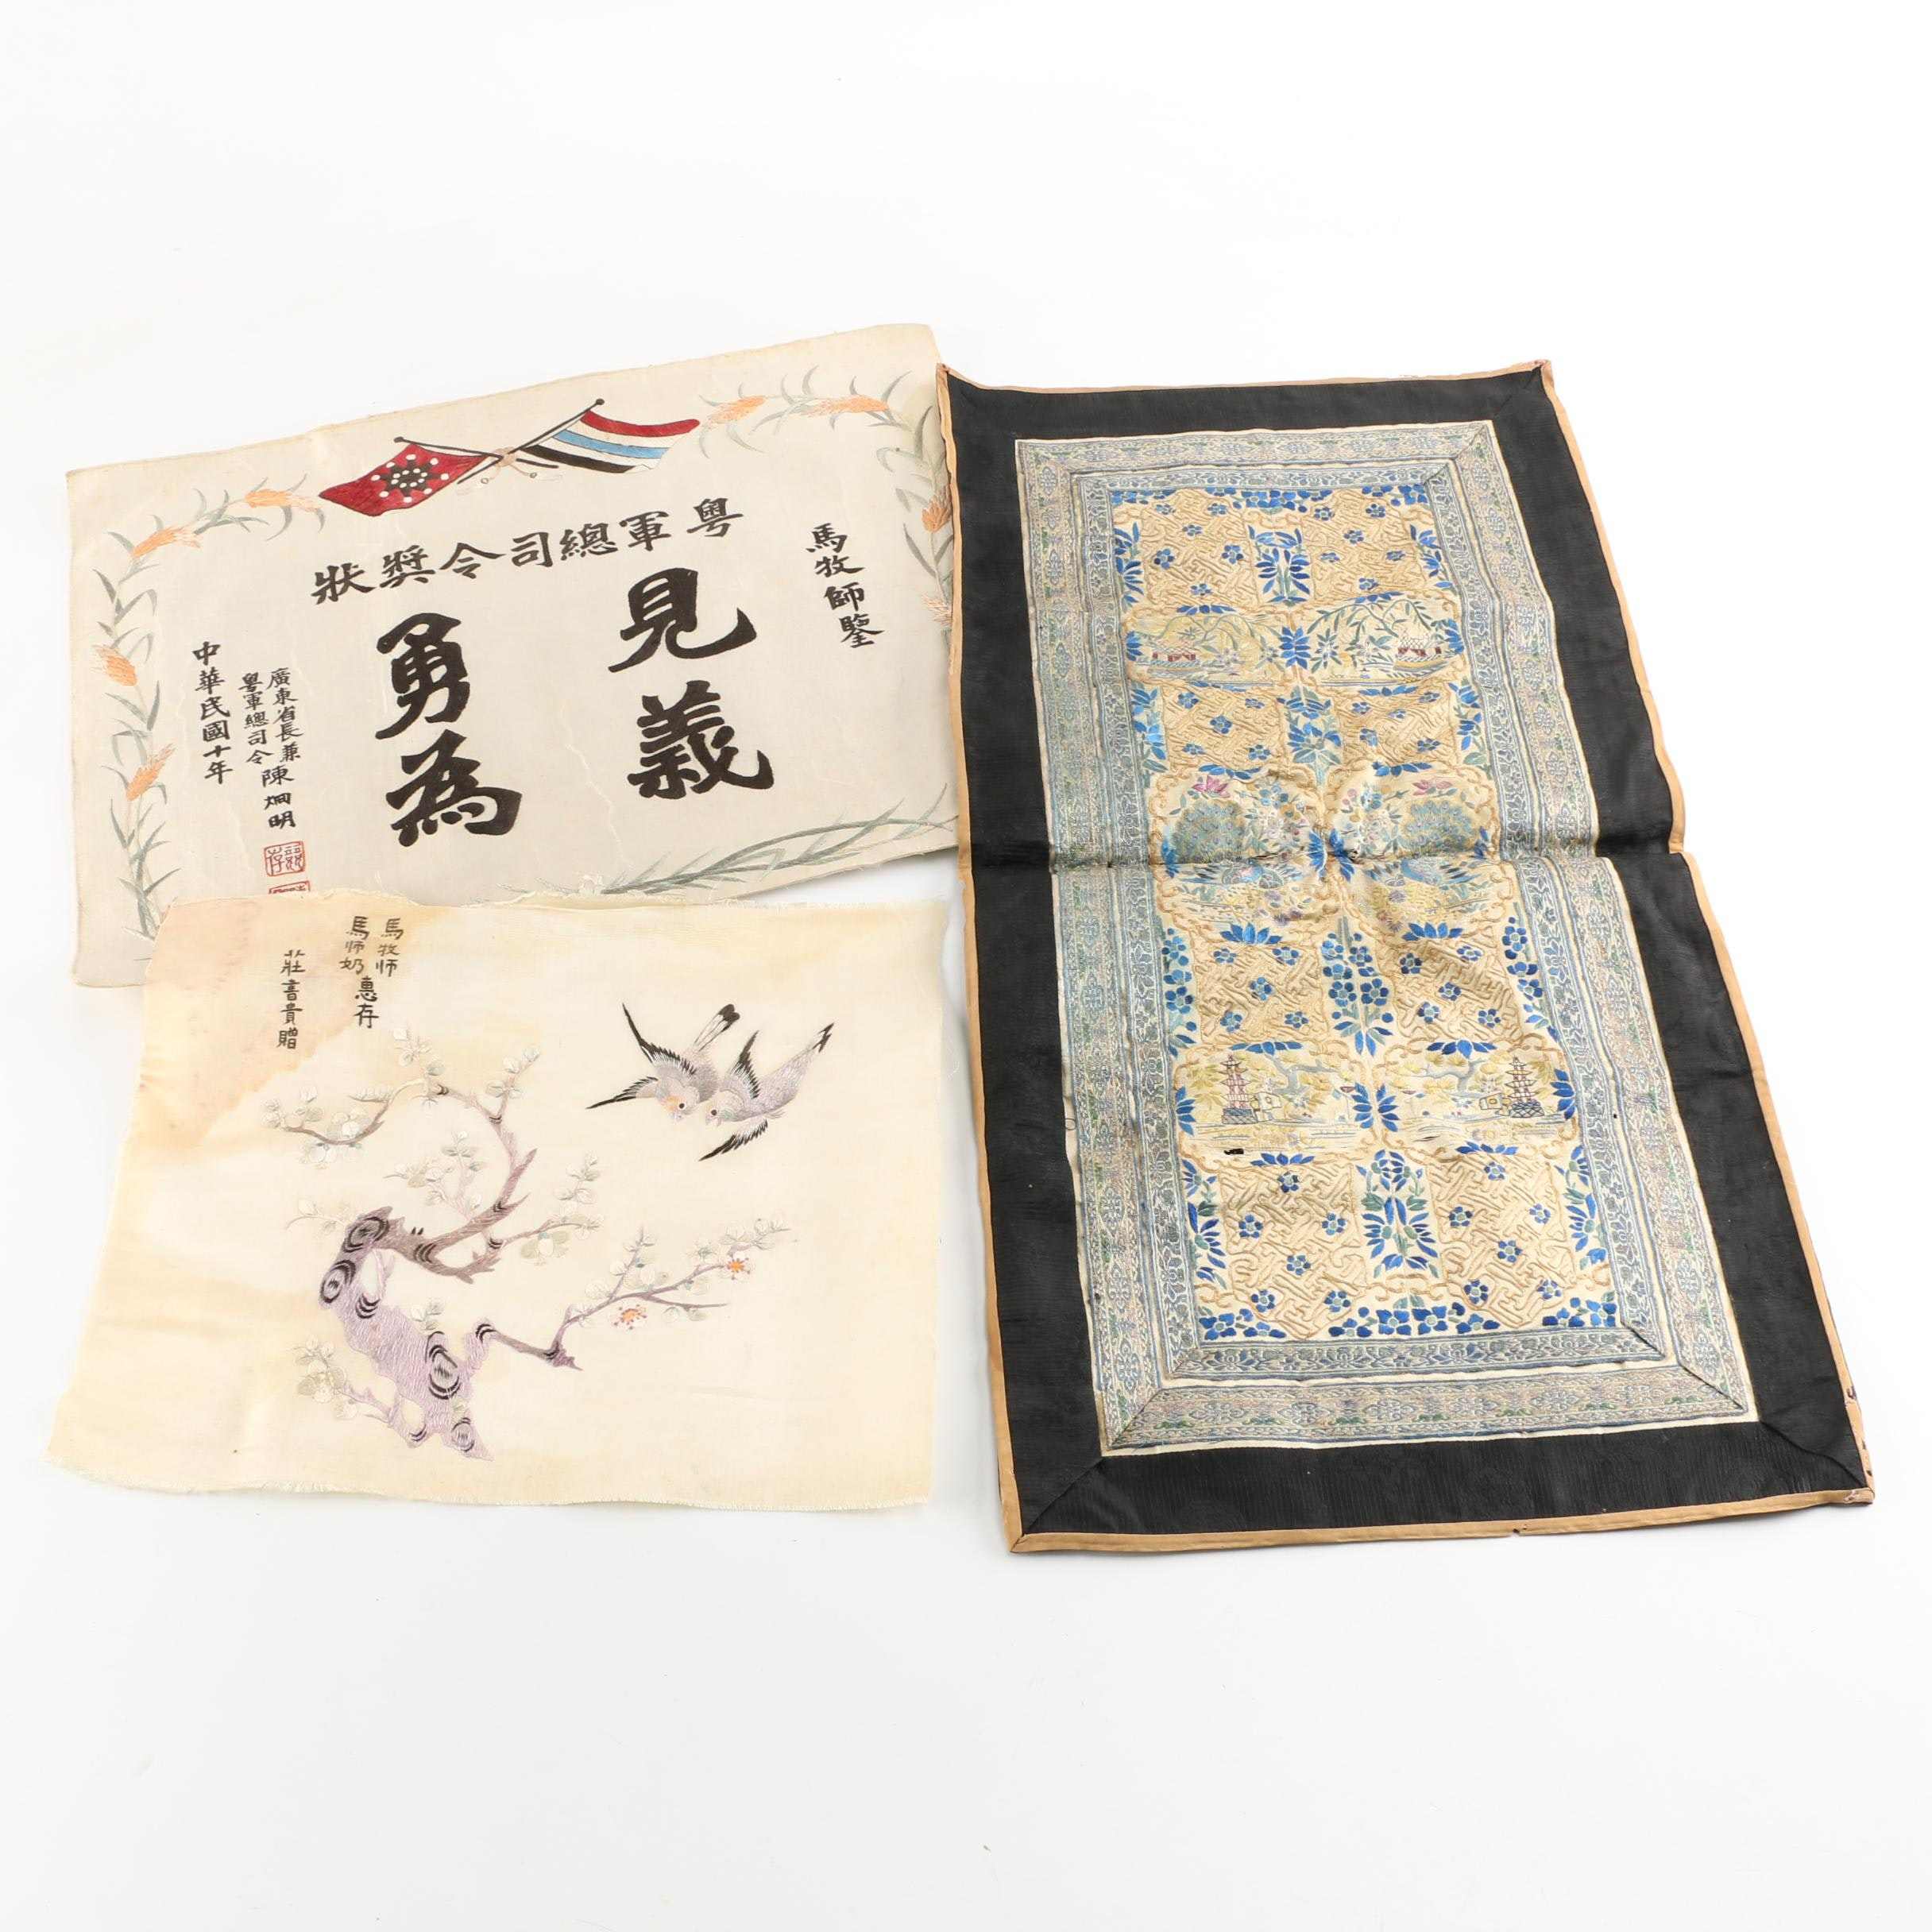 Vintage Chinese Embroidery Including Guangdong Army Certificate of Merit